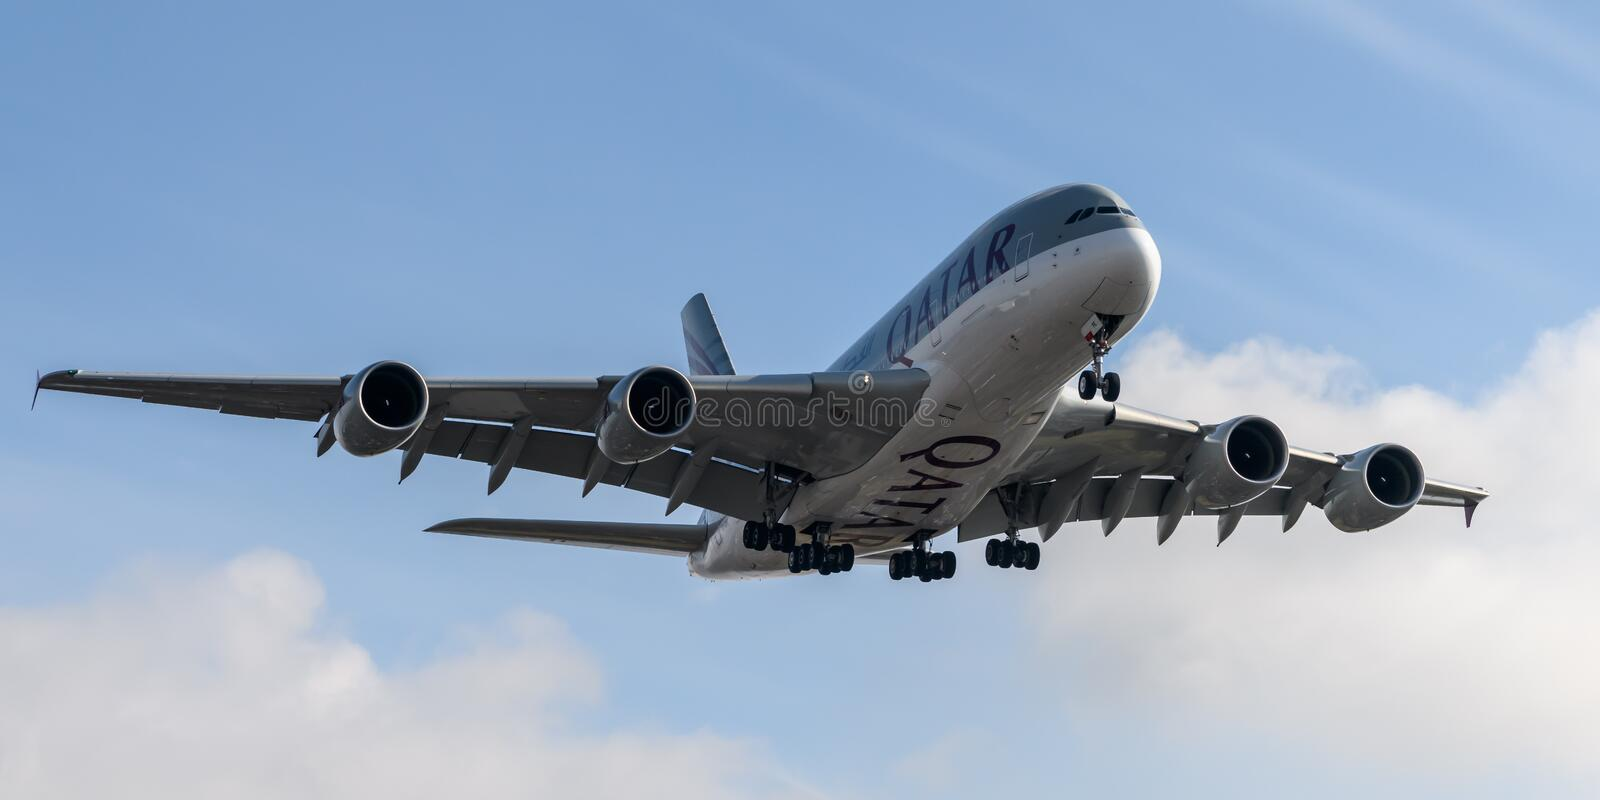 Qatar Airlines Airbus A380 landing stock photo